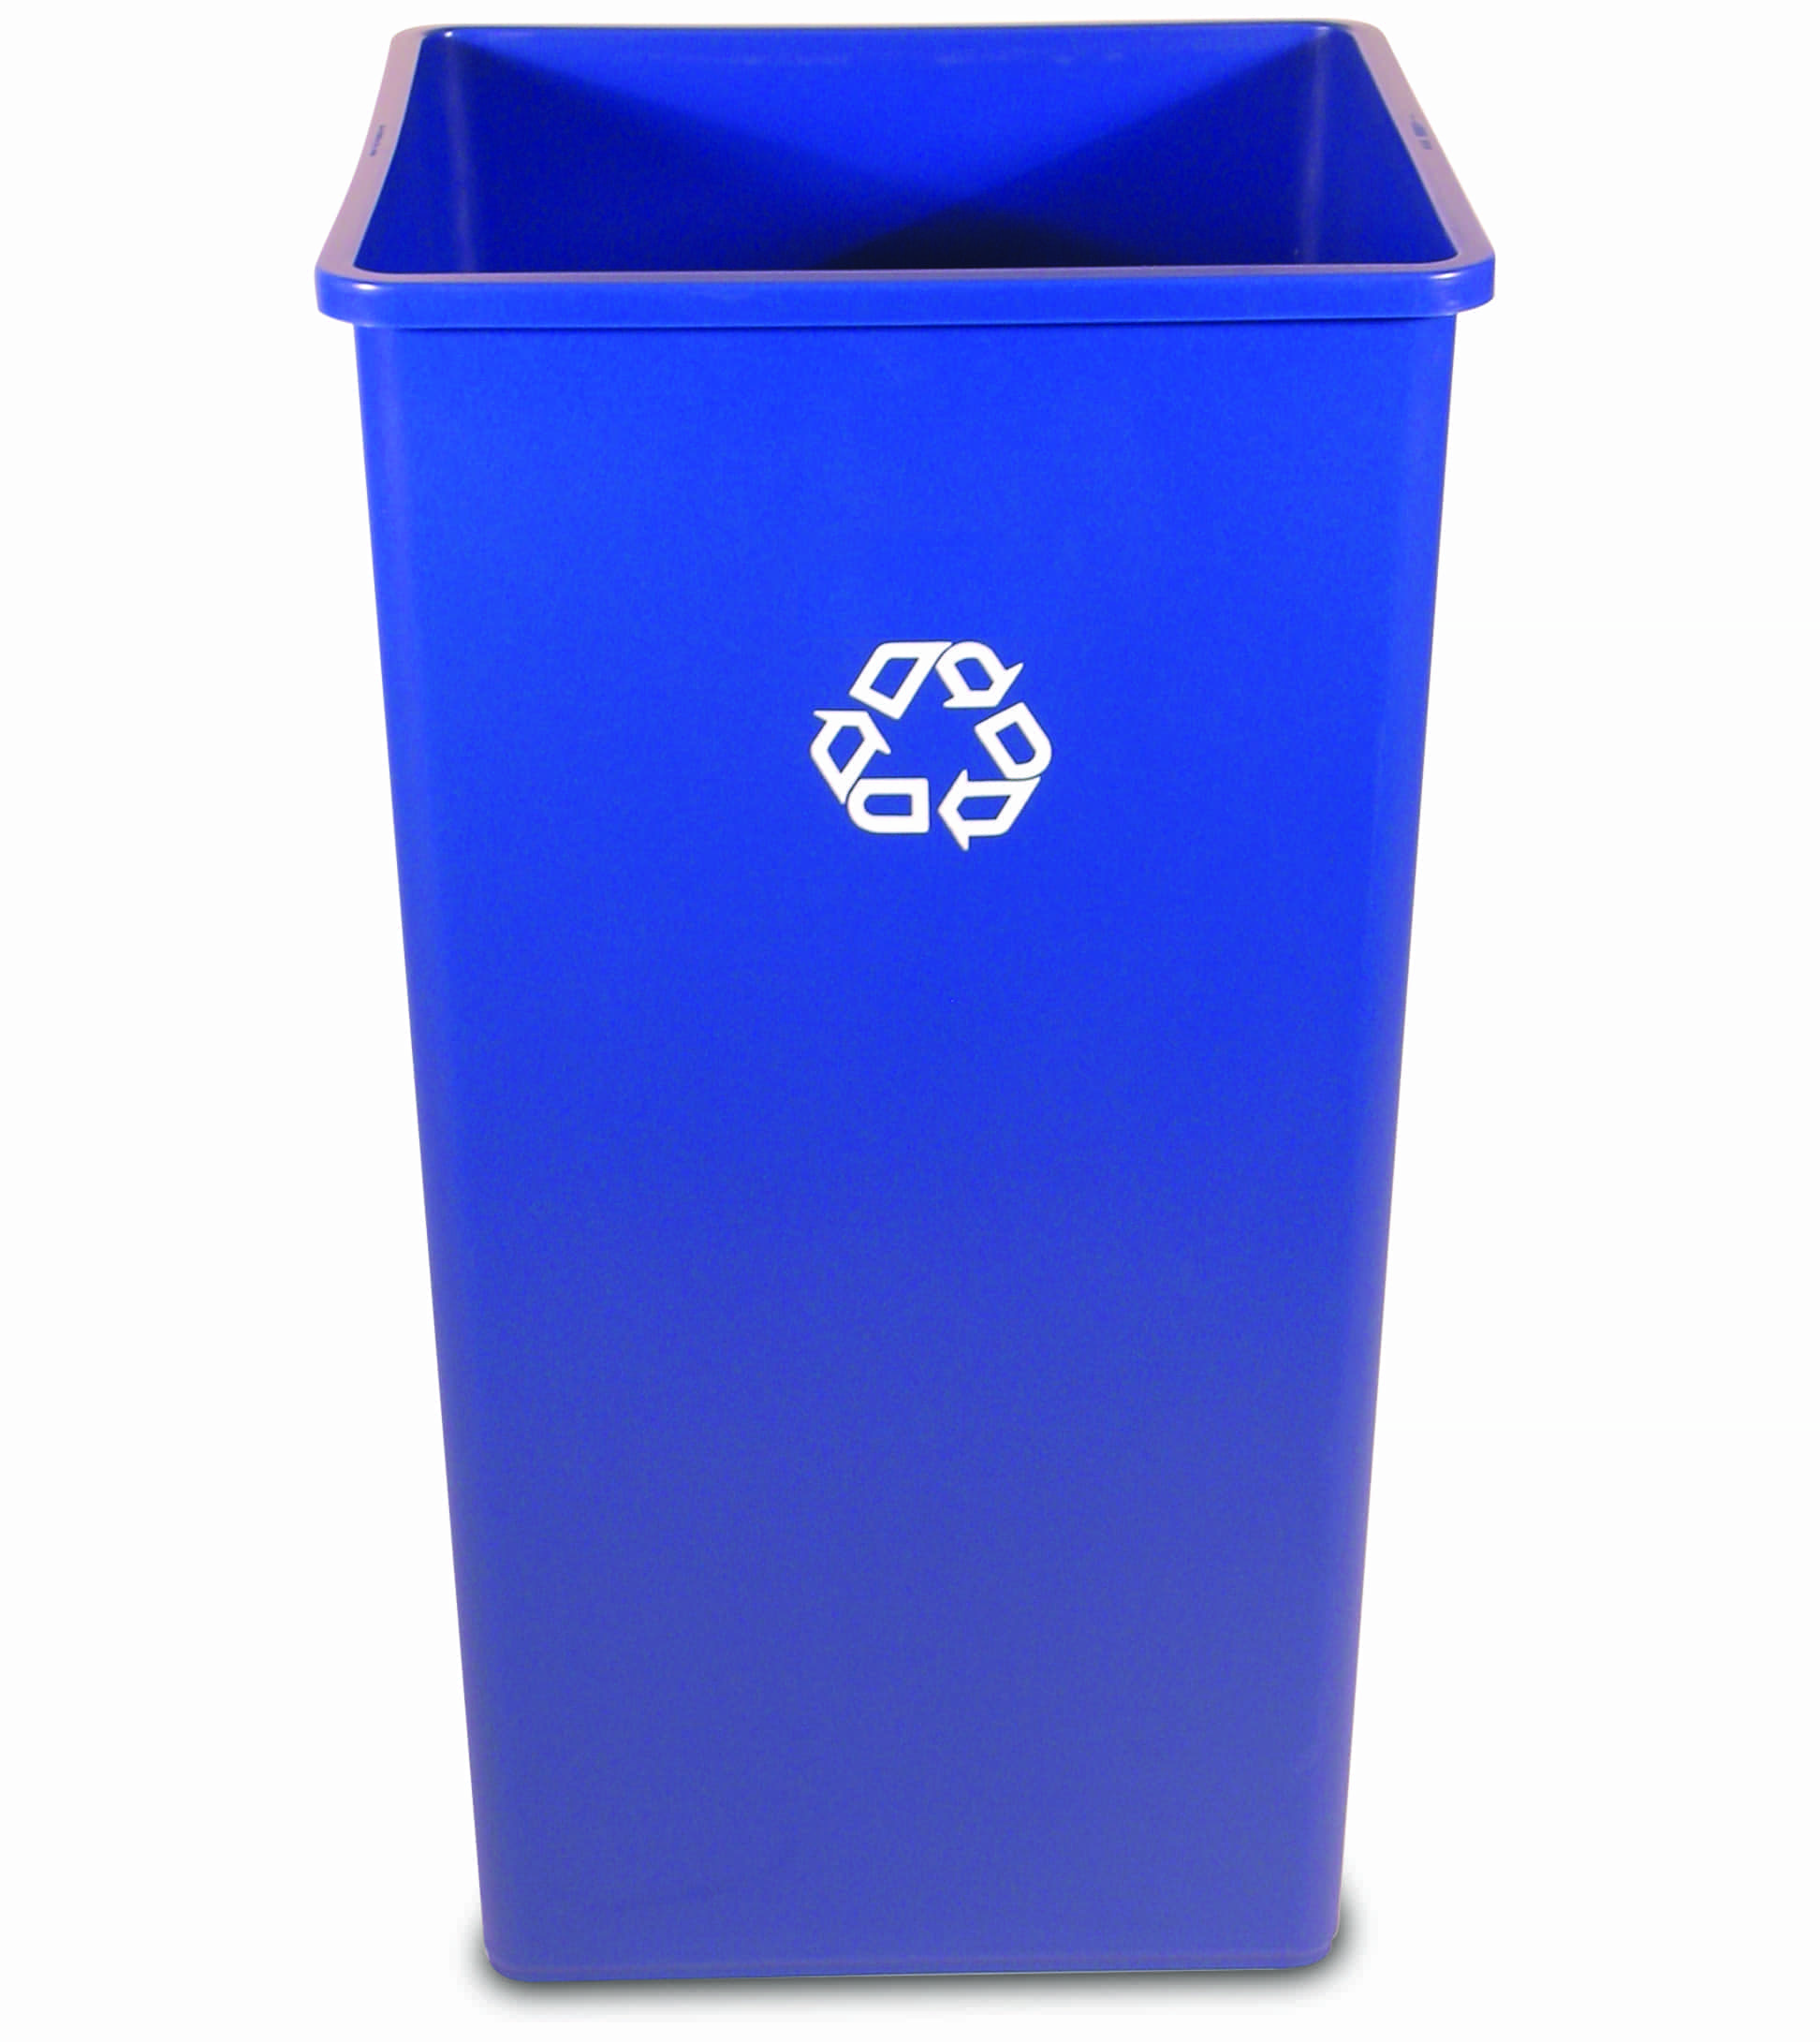 50 gal rubbermaid untouchable square recycling container recycle away - Recycle containers for home use ...